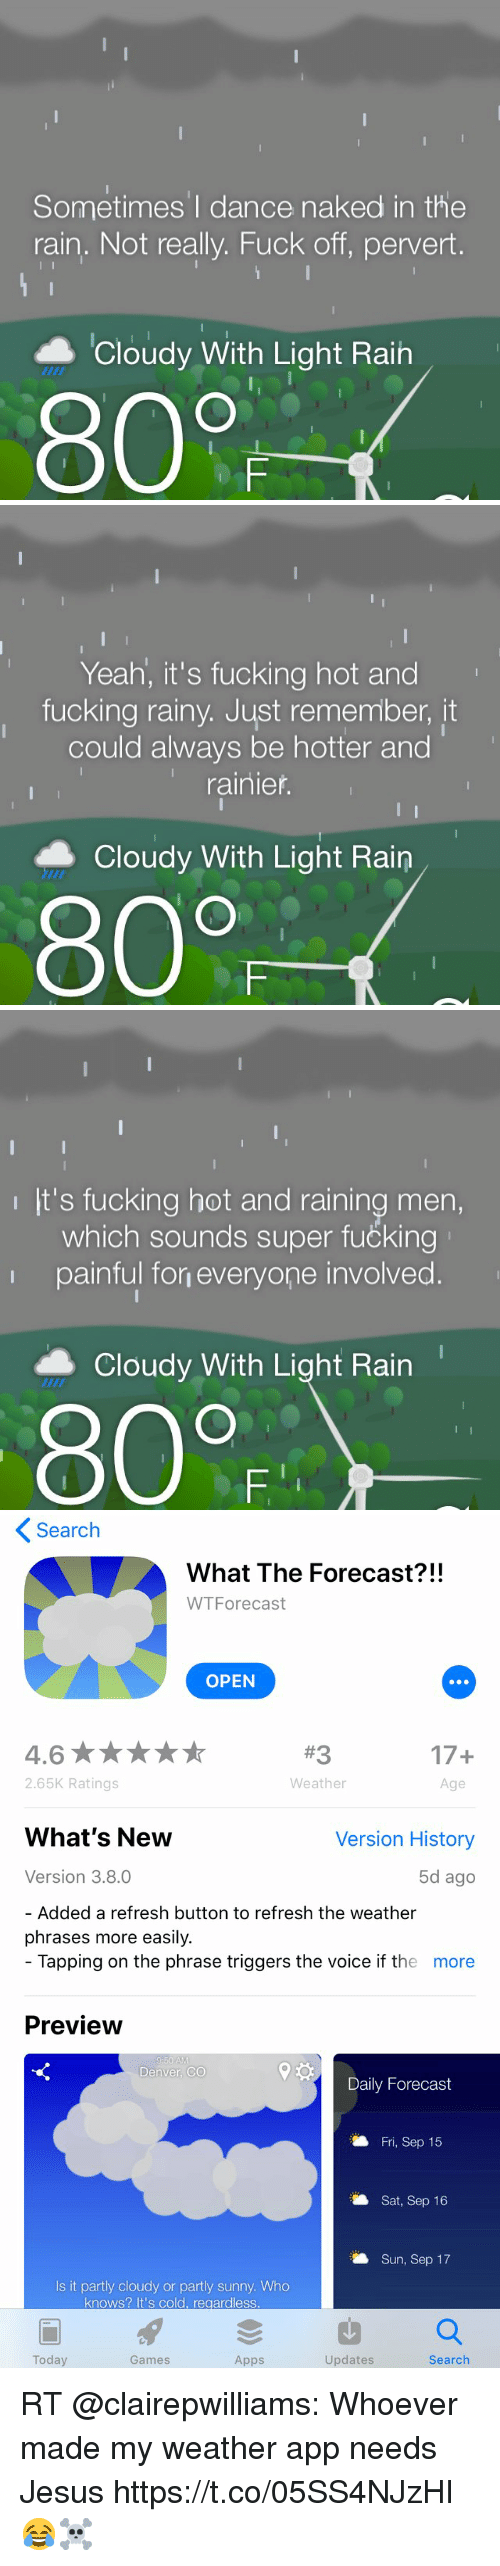 Fucking, Jesus, and The Voice: Sometimes'I dance naked in the  rain. Not really. Fuck off, pervert.  ▲ Cloudy With Light Rain  800   Yeah, it's fucking hot and  fucking rainy, Just remember, it  could always be hotter and  rainier  Cloudy With Light Rain  80F   It's fucking hot and raining men,  which sounds super fučking  painful fon everyone involved.  ▲ Cloudy With Light Rain  800   Search  What The Forecast?!!  WTForecast  OPEN  17+  Age  2.65K Ratings  Weather  What's New  Version History  Version 3.8.0  5d ago  Added a refresh button to refresh the weather  phrases more easily.  Tapping on the phrase triggers the voice if the  more  Preview  Denver, CO  Daily Forecast  Fri, Sep 15  Sat, Sep 16  Sun, Sep 17  Is it partly cloudy or partly sunny. Who  knows? It's cold, regardless  Today  Games  Apps  Updates  Search RT @clairepwilliams: Whoever made my weather app needs Jesus https://t.co/05SS4NJzHI 😂☠️